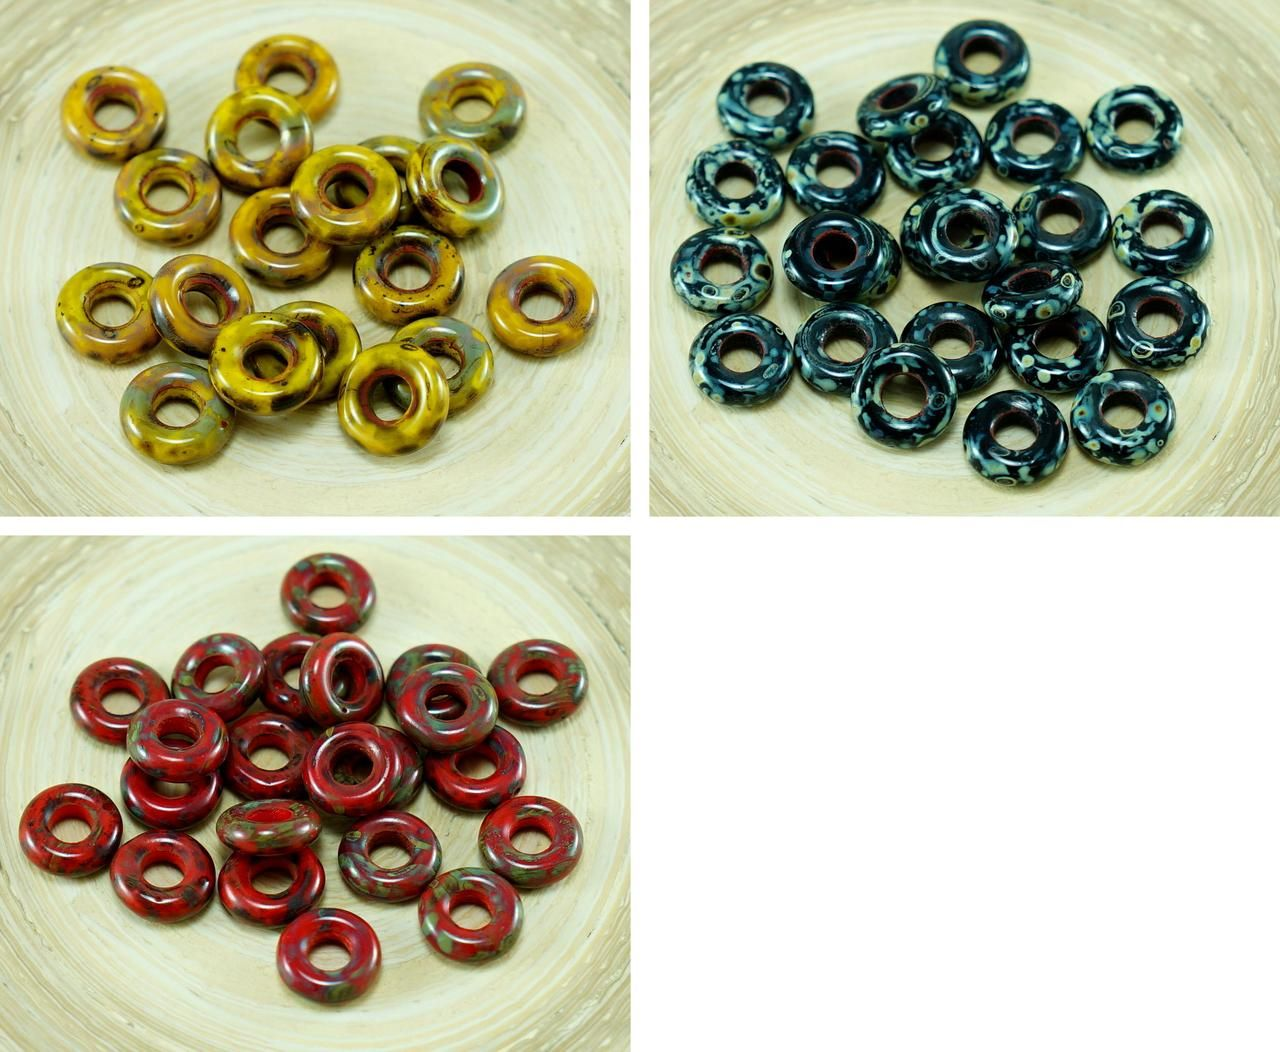 Color: Picasso / Opaque (mm): size (mm): 4mm (approximately) Shape: Round / Flat Ring Beads / O Shaped / Large Hole Donut Sold in packs of 40pcs ► Beautiful beads exclusively created by Anissa Picasso designers, you can find other products using #anissa picasso or #AnissaPicasso!◄ 40pcs Anissa Picasso Opaque [...]